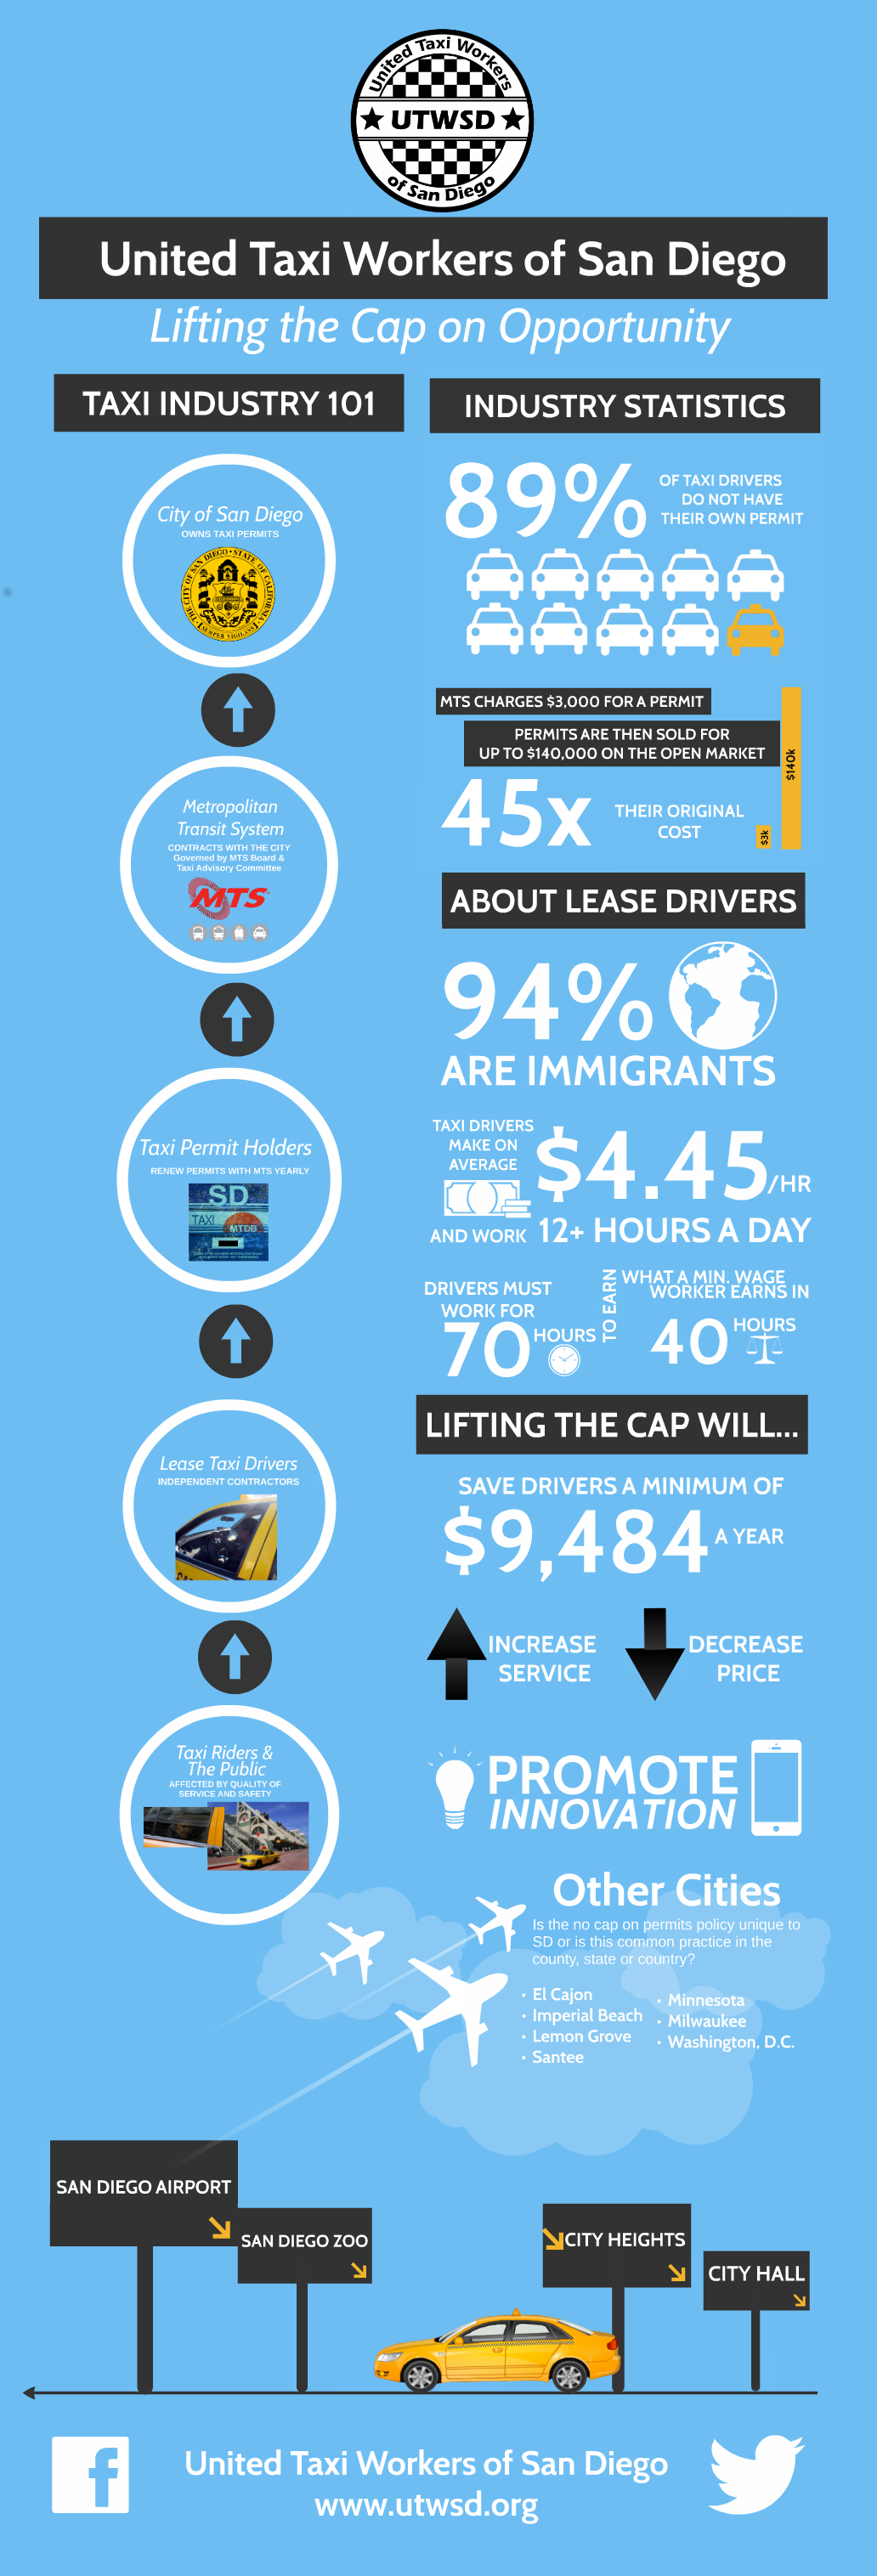 lift the cap infographic